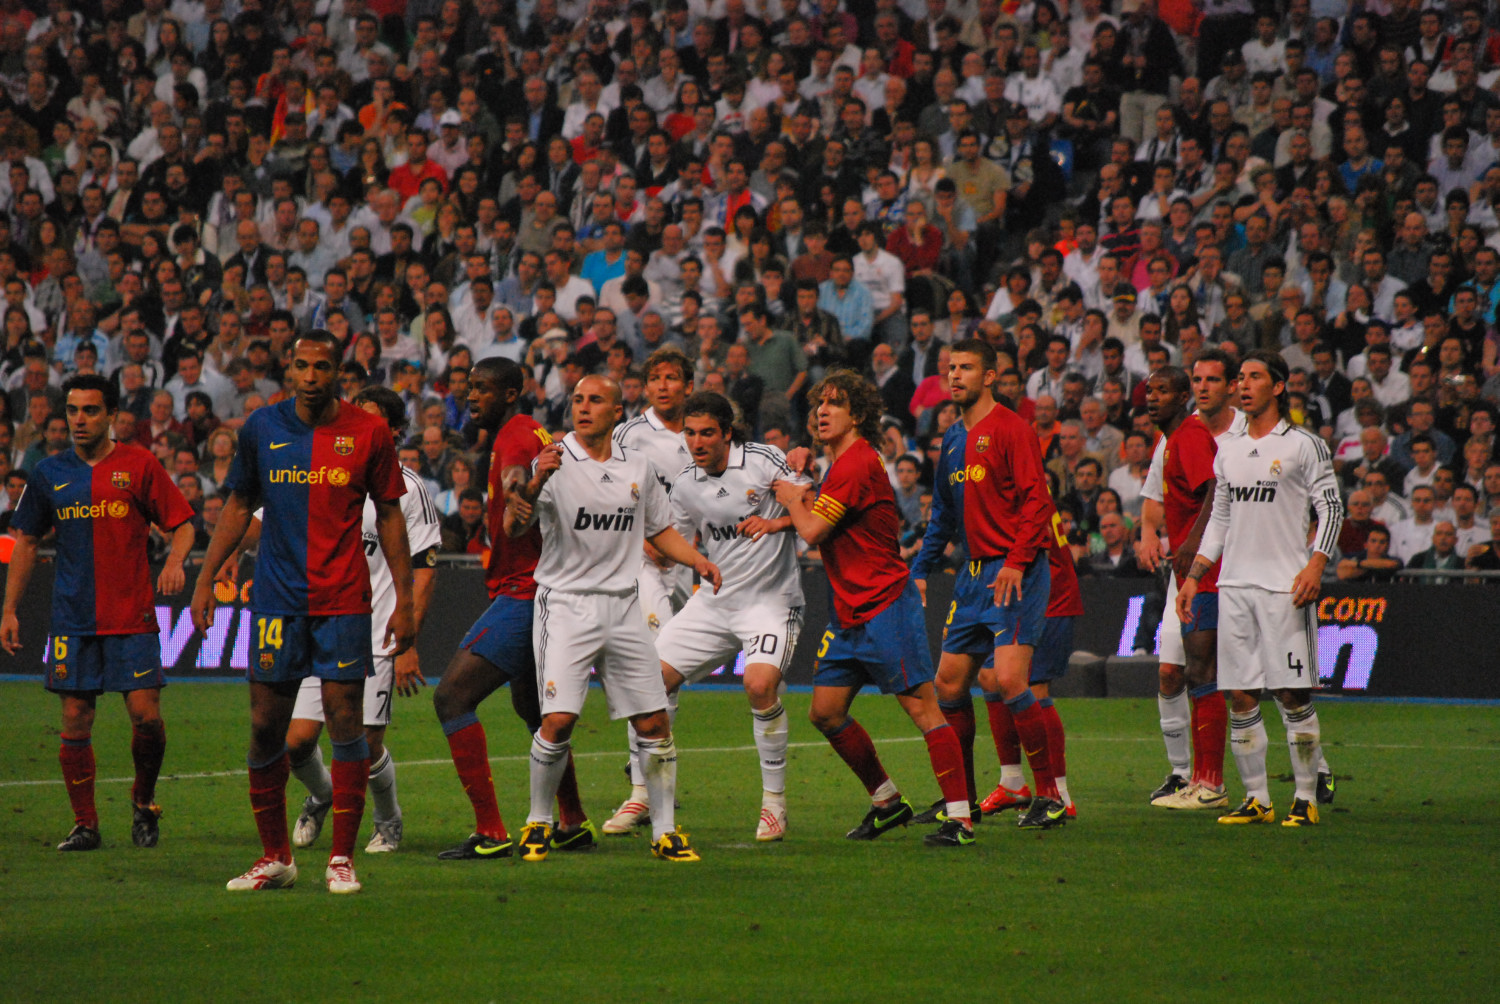 e9094db8d77 Players jostle in Barcelona's 2–6 win against Real Madrid at the Santiago  Bernabéu Stadium in a 2009 El Clásico.